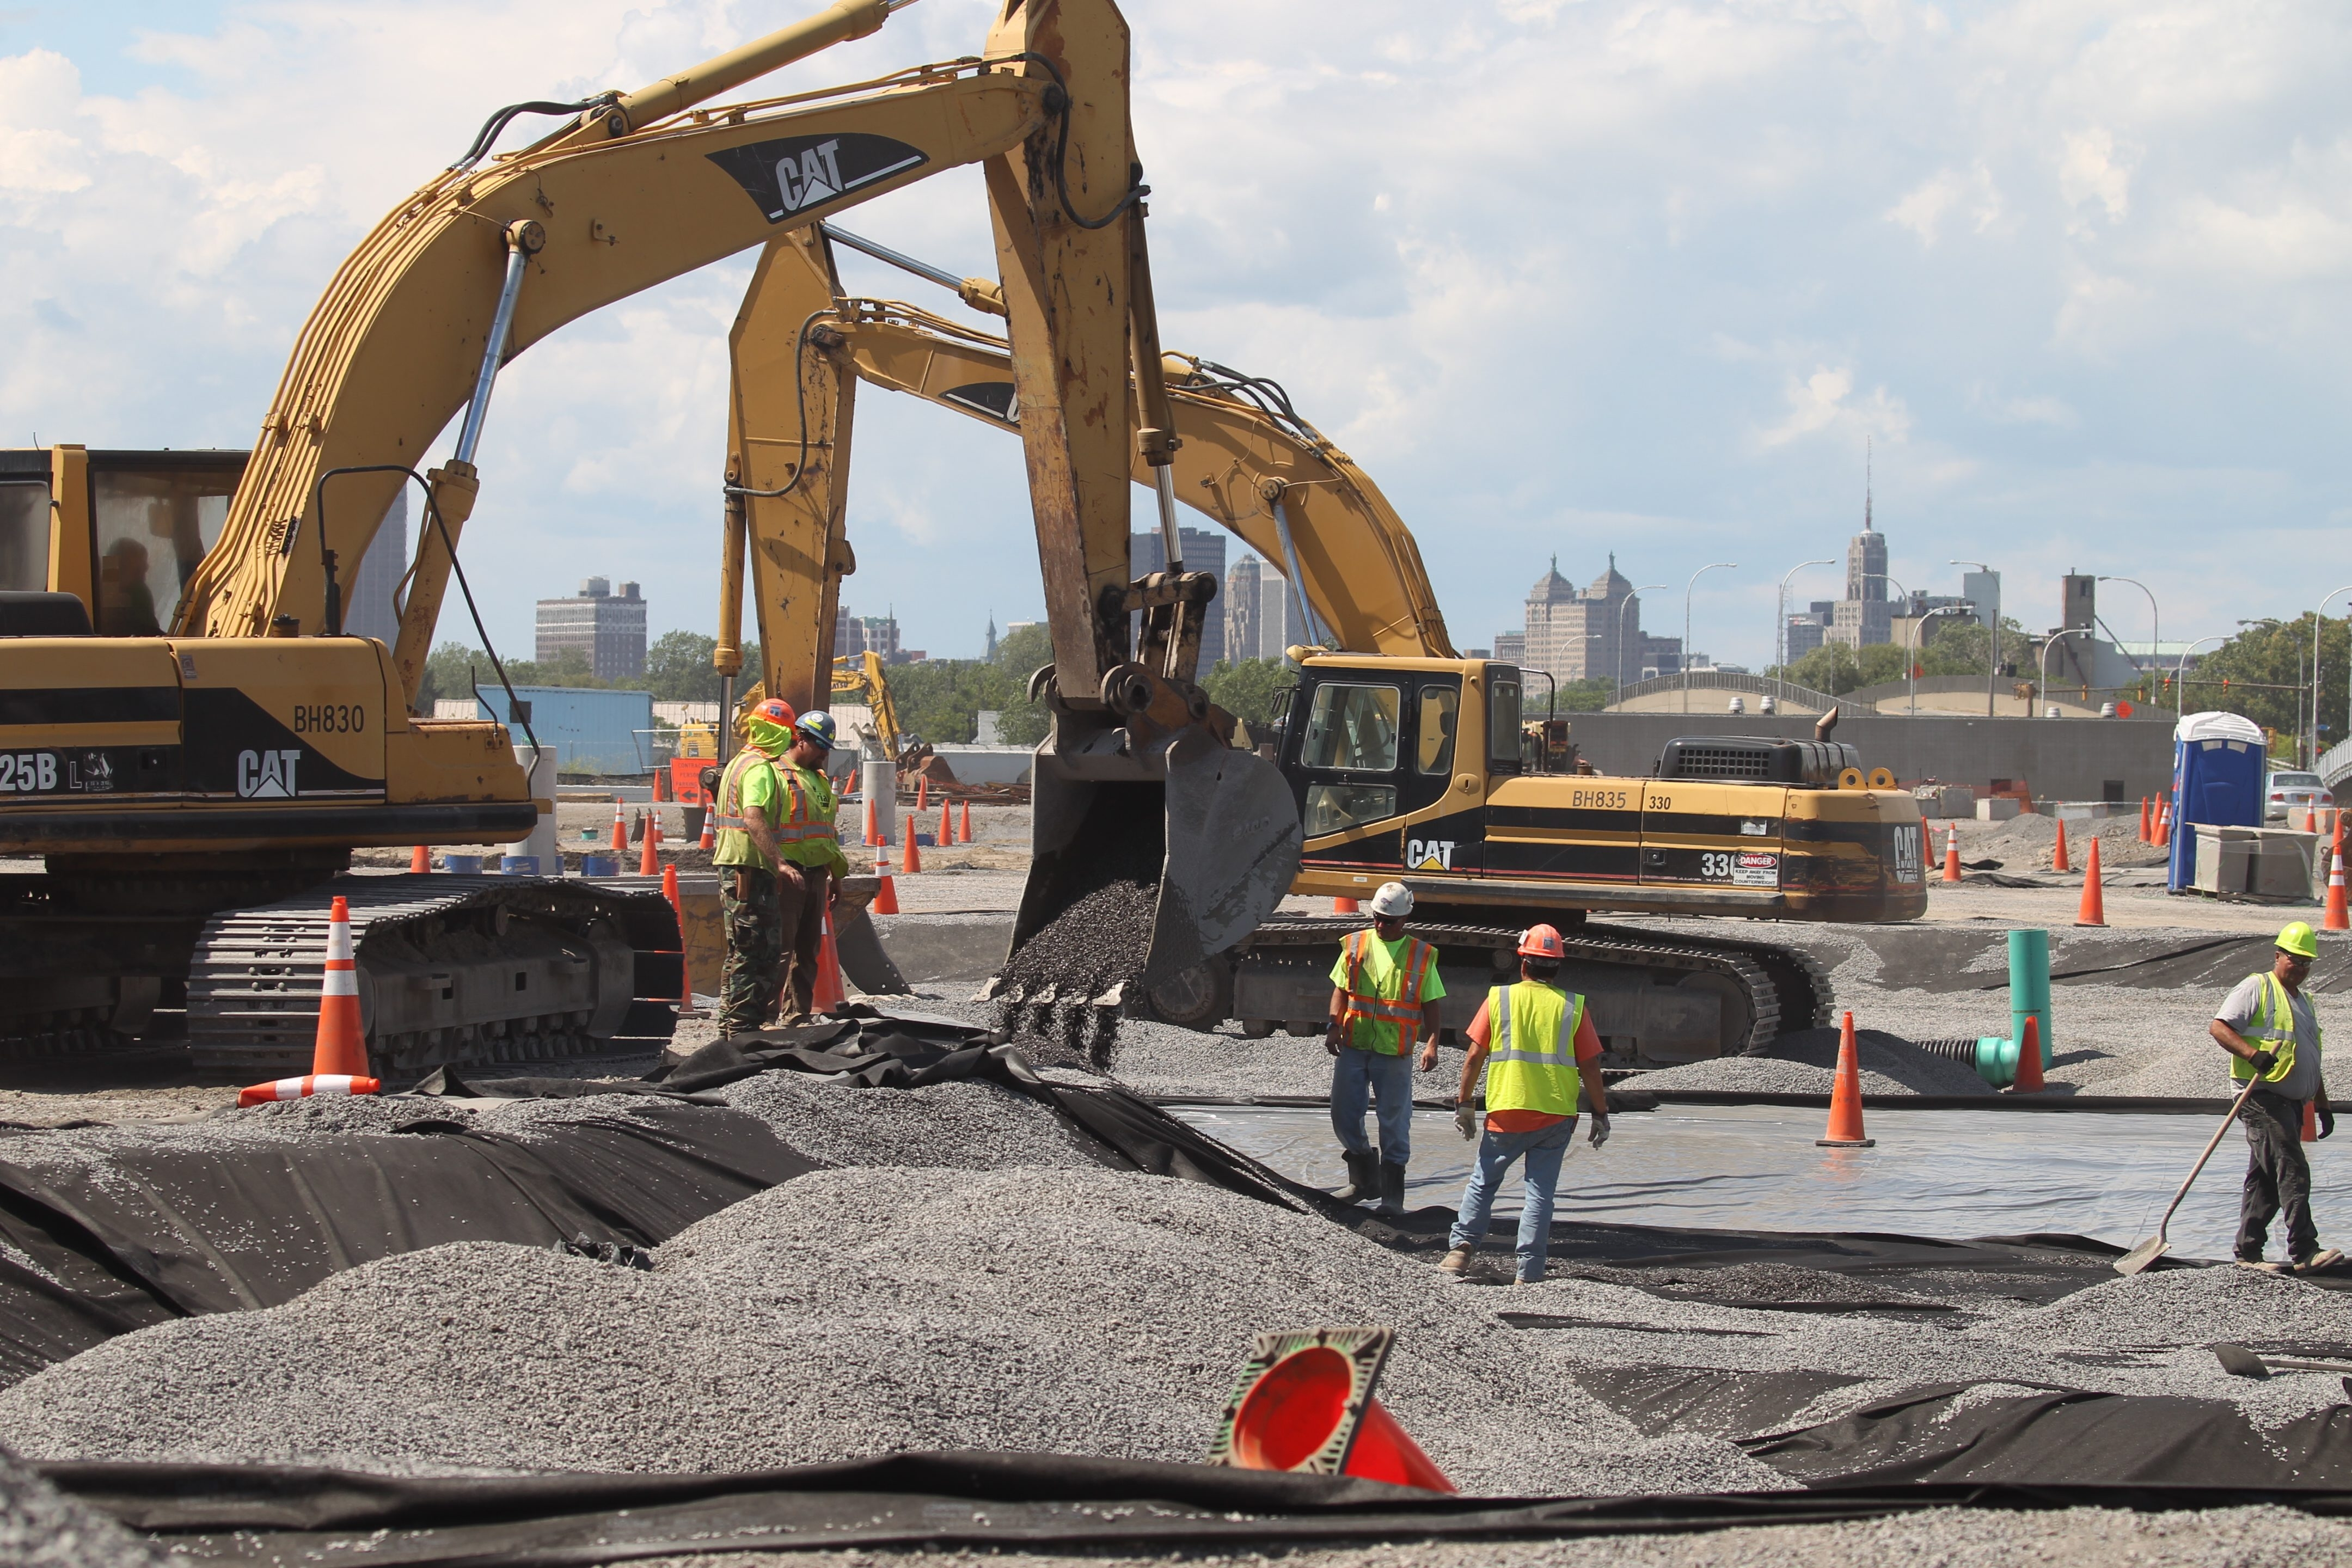 Contruction crews work on a water retention pond for a parking area as work goes on at SolarCity on Aug. 4, 2015. (John Hickey/News file photo)